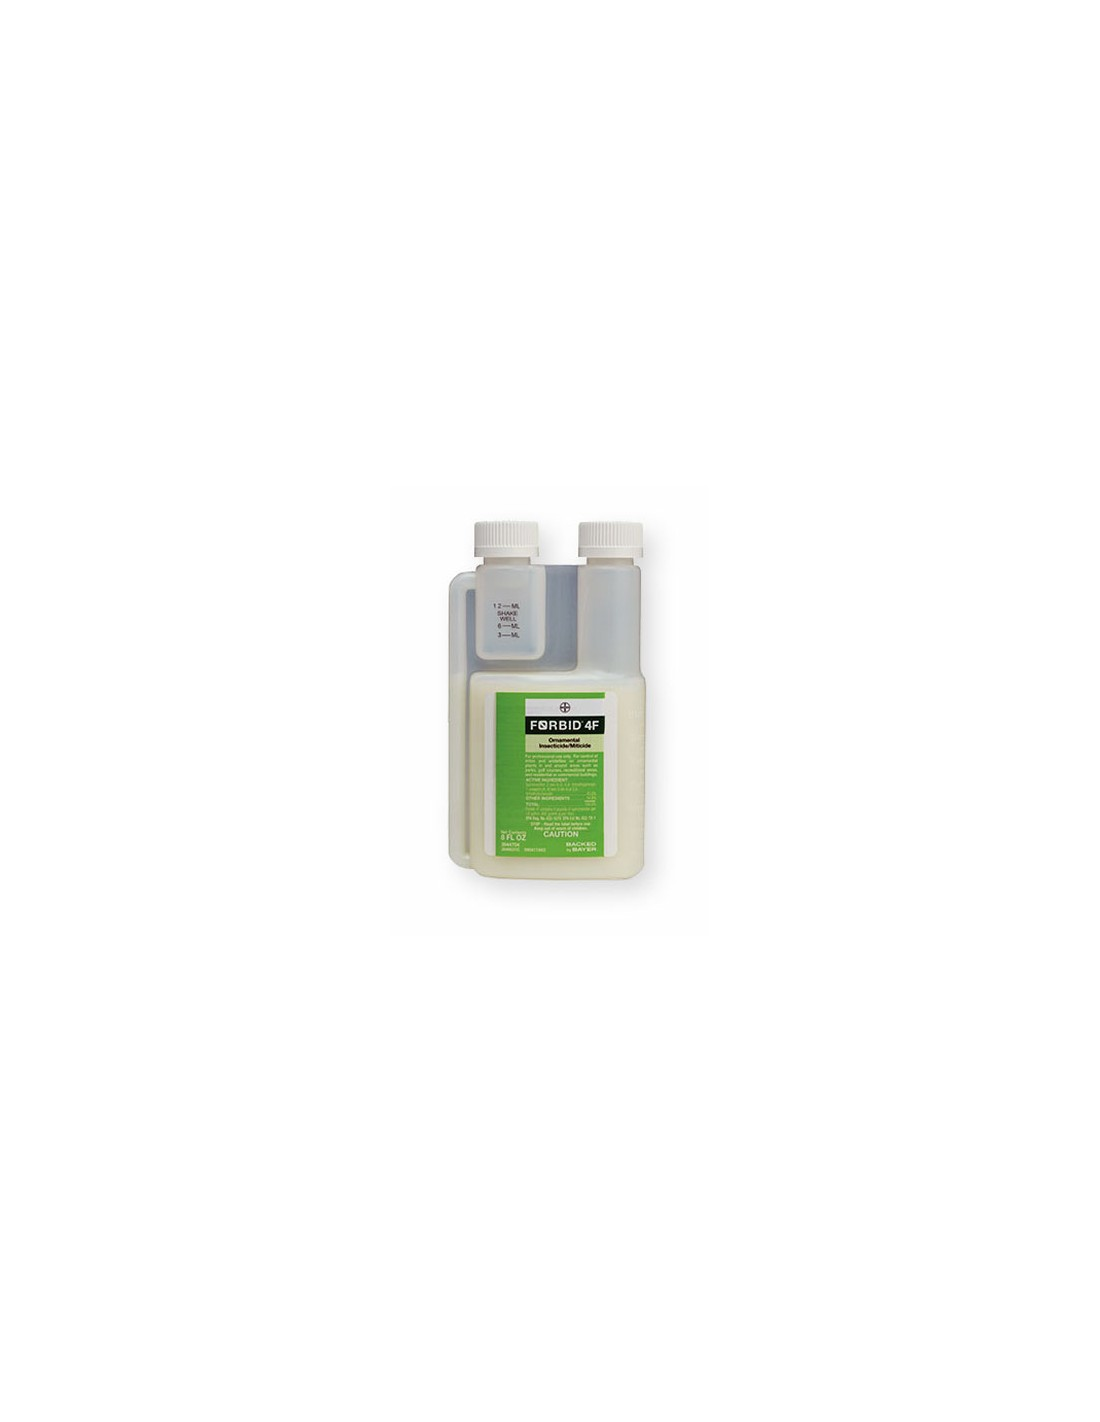 Forbid 4F Ornamental Insecticide Miticide Questions & Answers